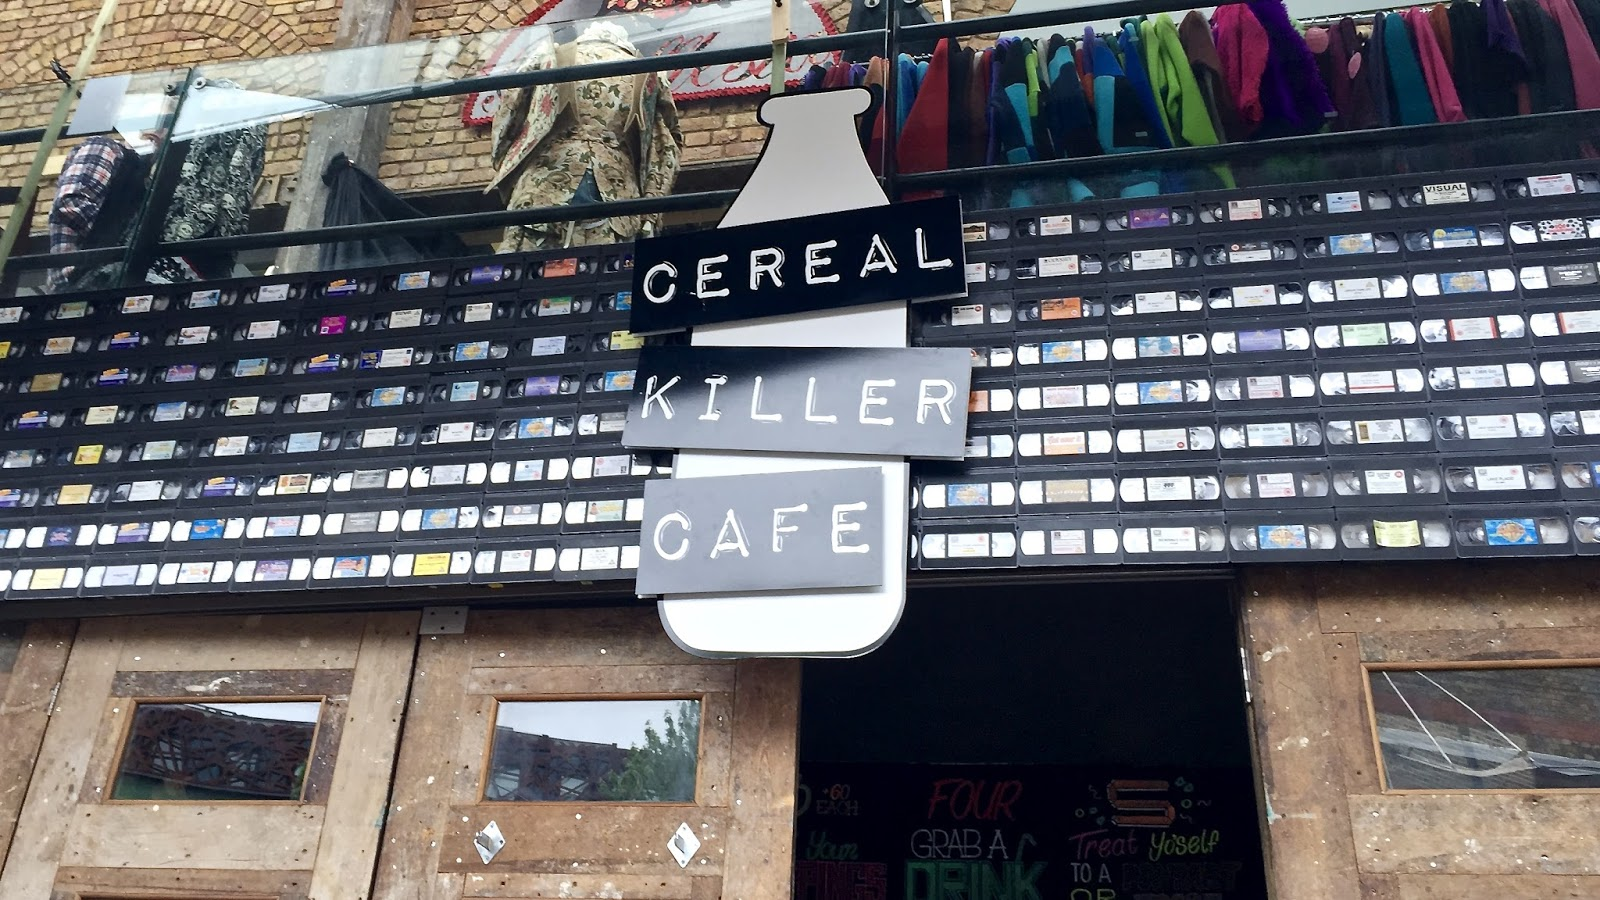 Things To Do In London || Cereal Killer Cafe Camden